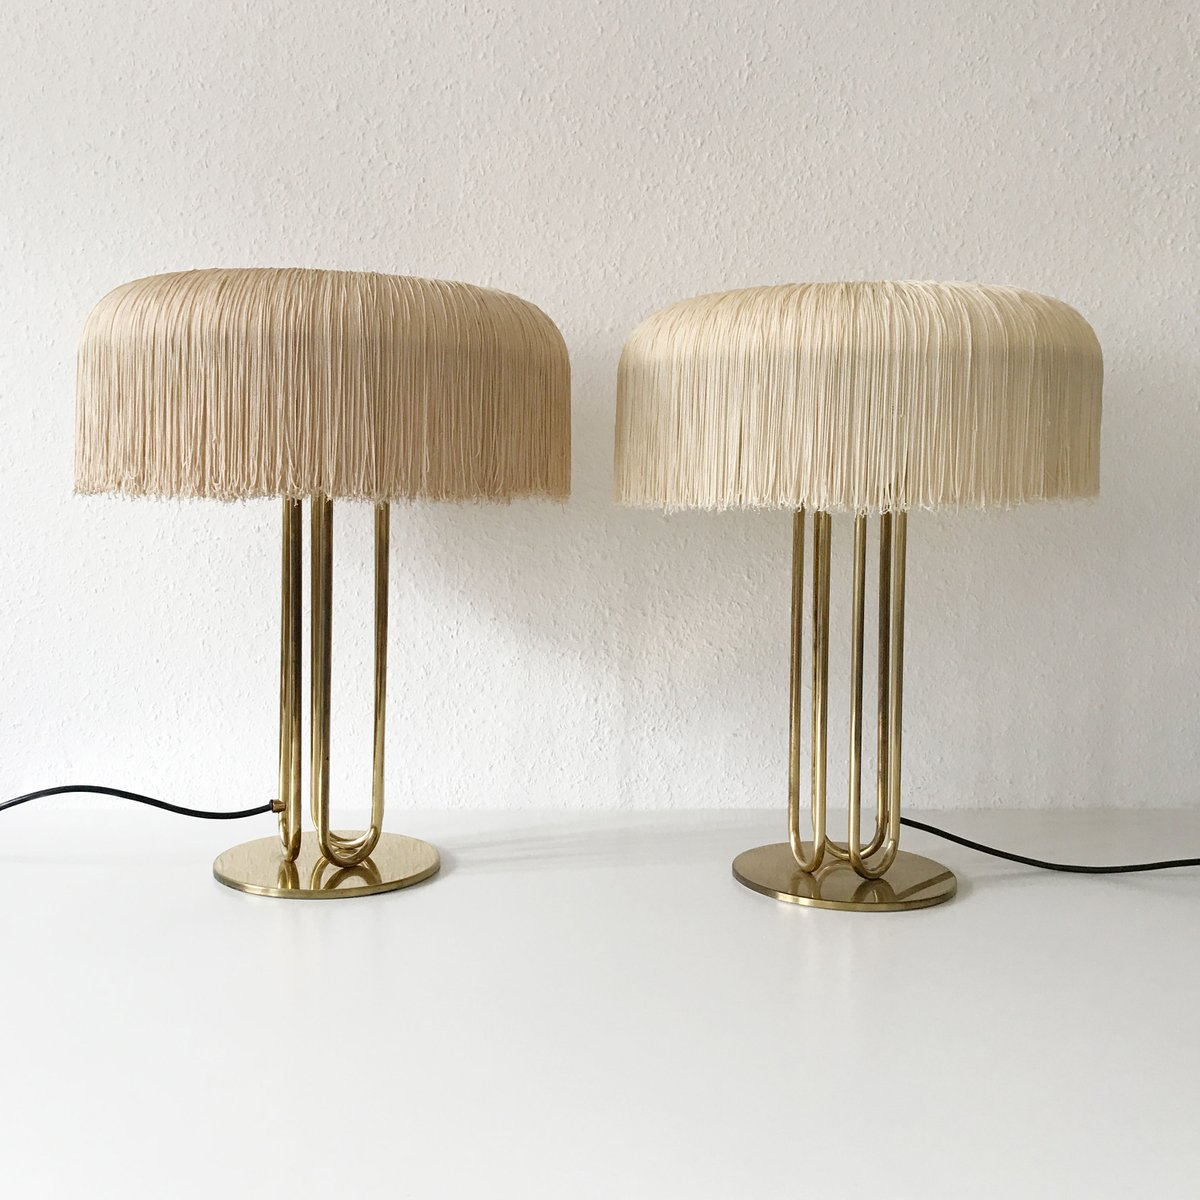 Large mid century brass table lamps set of 2 for sale at pamono large mid century brass table lamps set of 2 aloadofball Choice Image